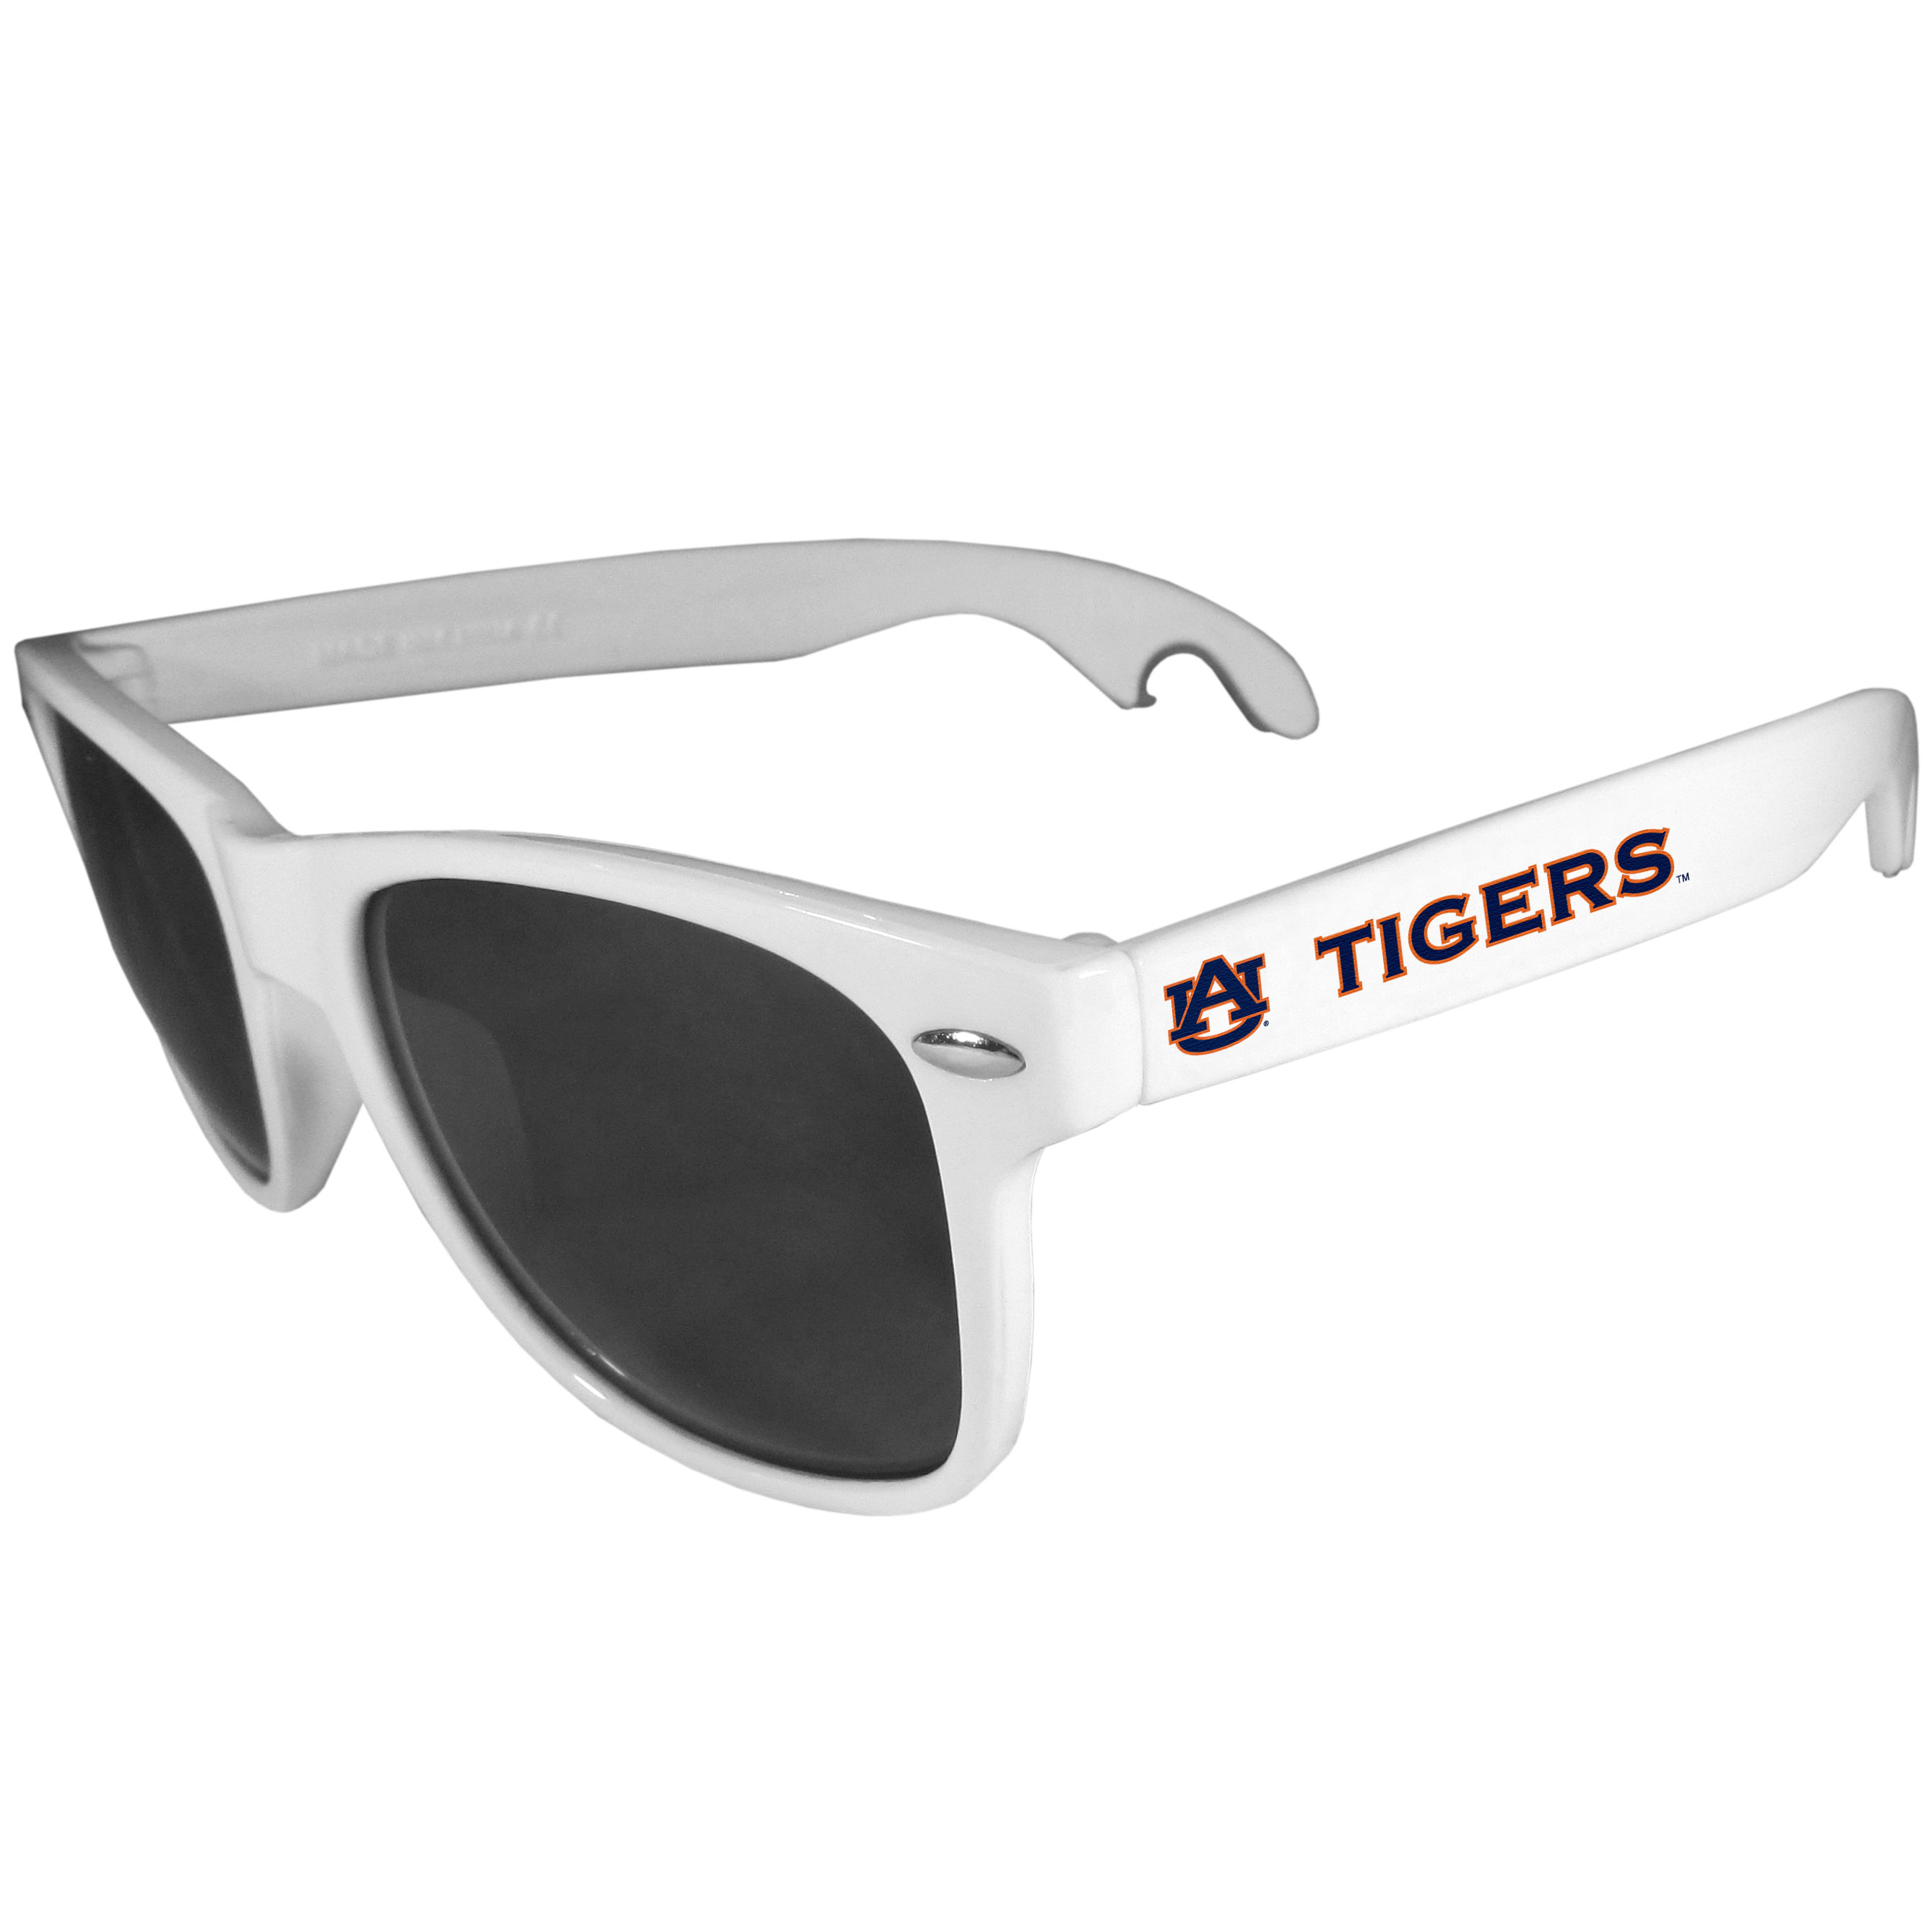 Auburn Tigers Beachfarer Bottle Opener Sunglasses, White - Seriously, these sunglasses open bottles! Keep the party going with these amazing Auburn Tigers bottle opener sunglasses. The stylish retro frames feature team designs on the arms and functional bottle openers on the end of the arms. Whether you are at the beach or having a backyard BBQ on game day, these shades will keep your eyes protected with 100% UVA/UVB protection and keep you hydrated with the handy bottle opener arms.